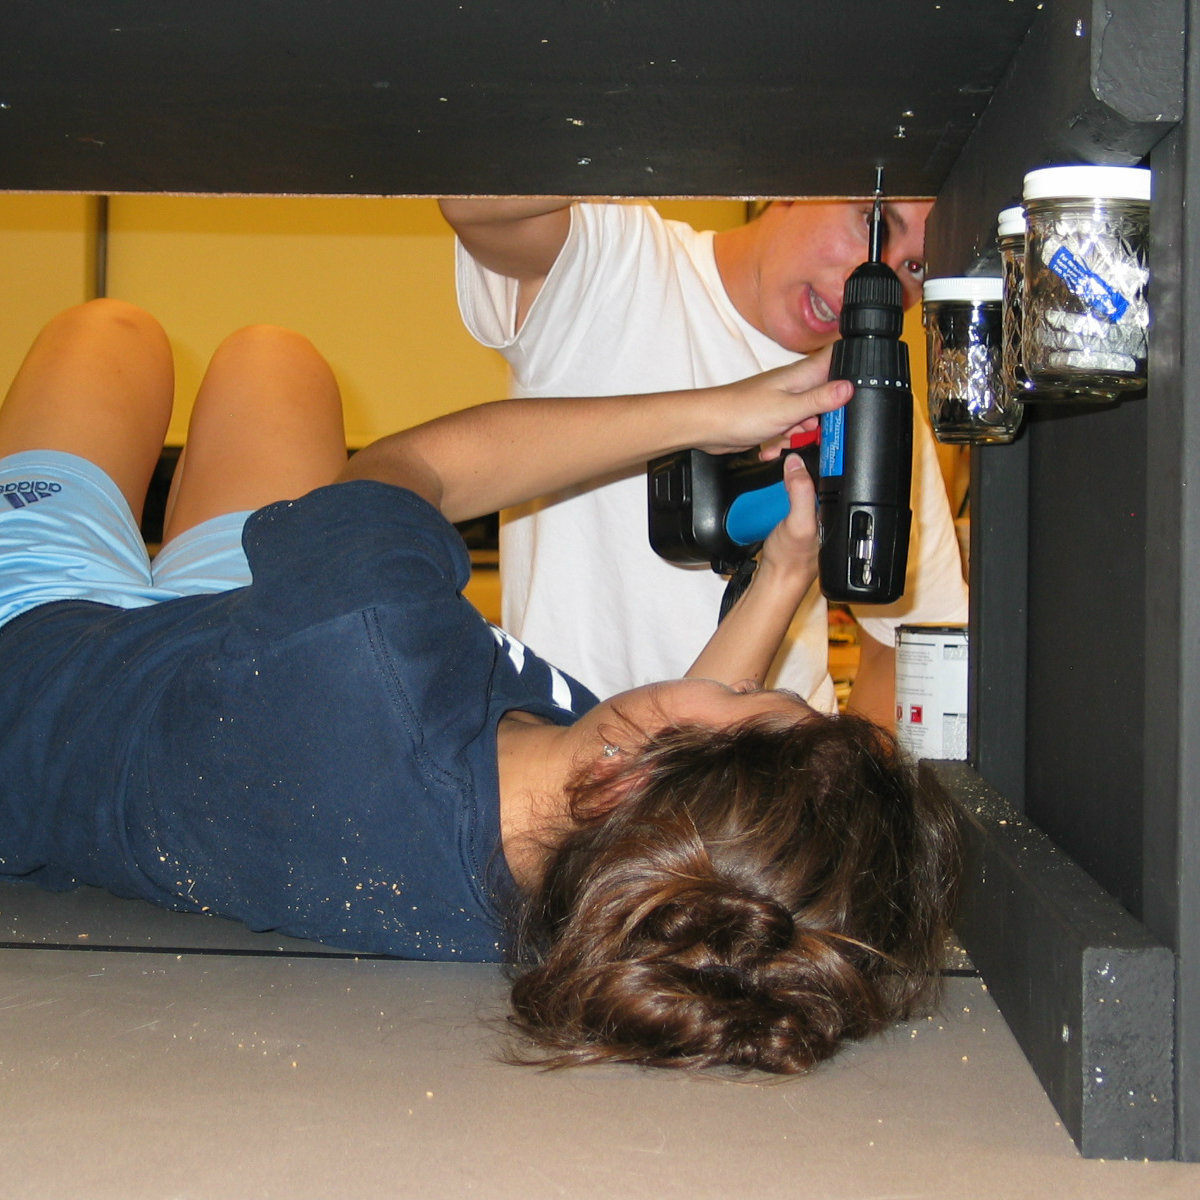 students using a drill in a tight spot under desk